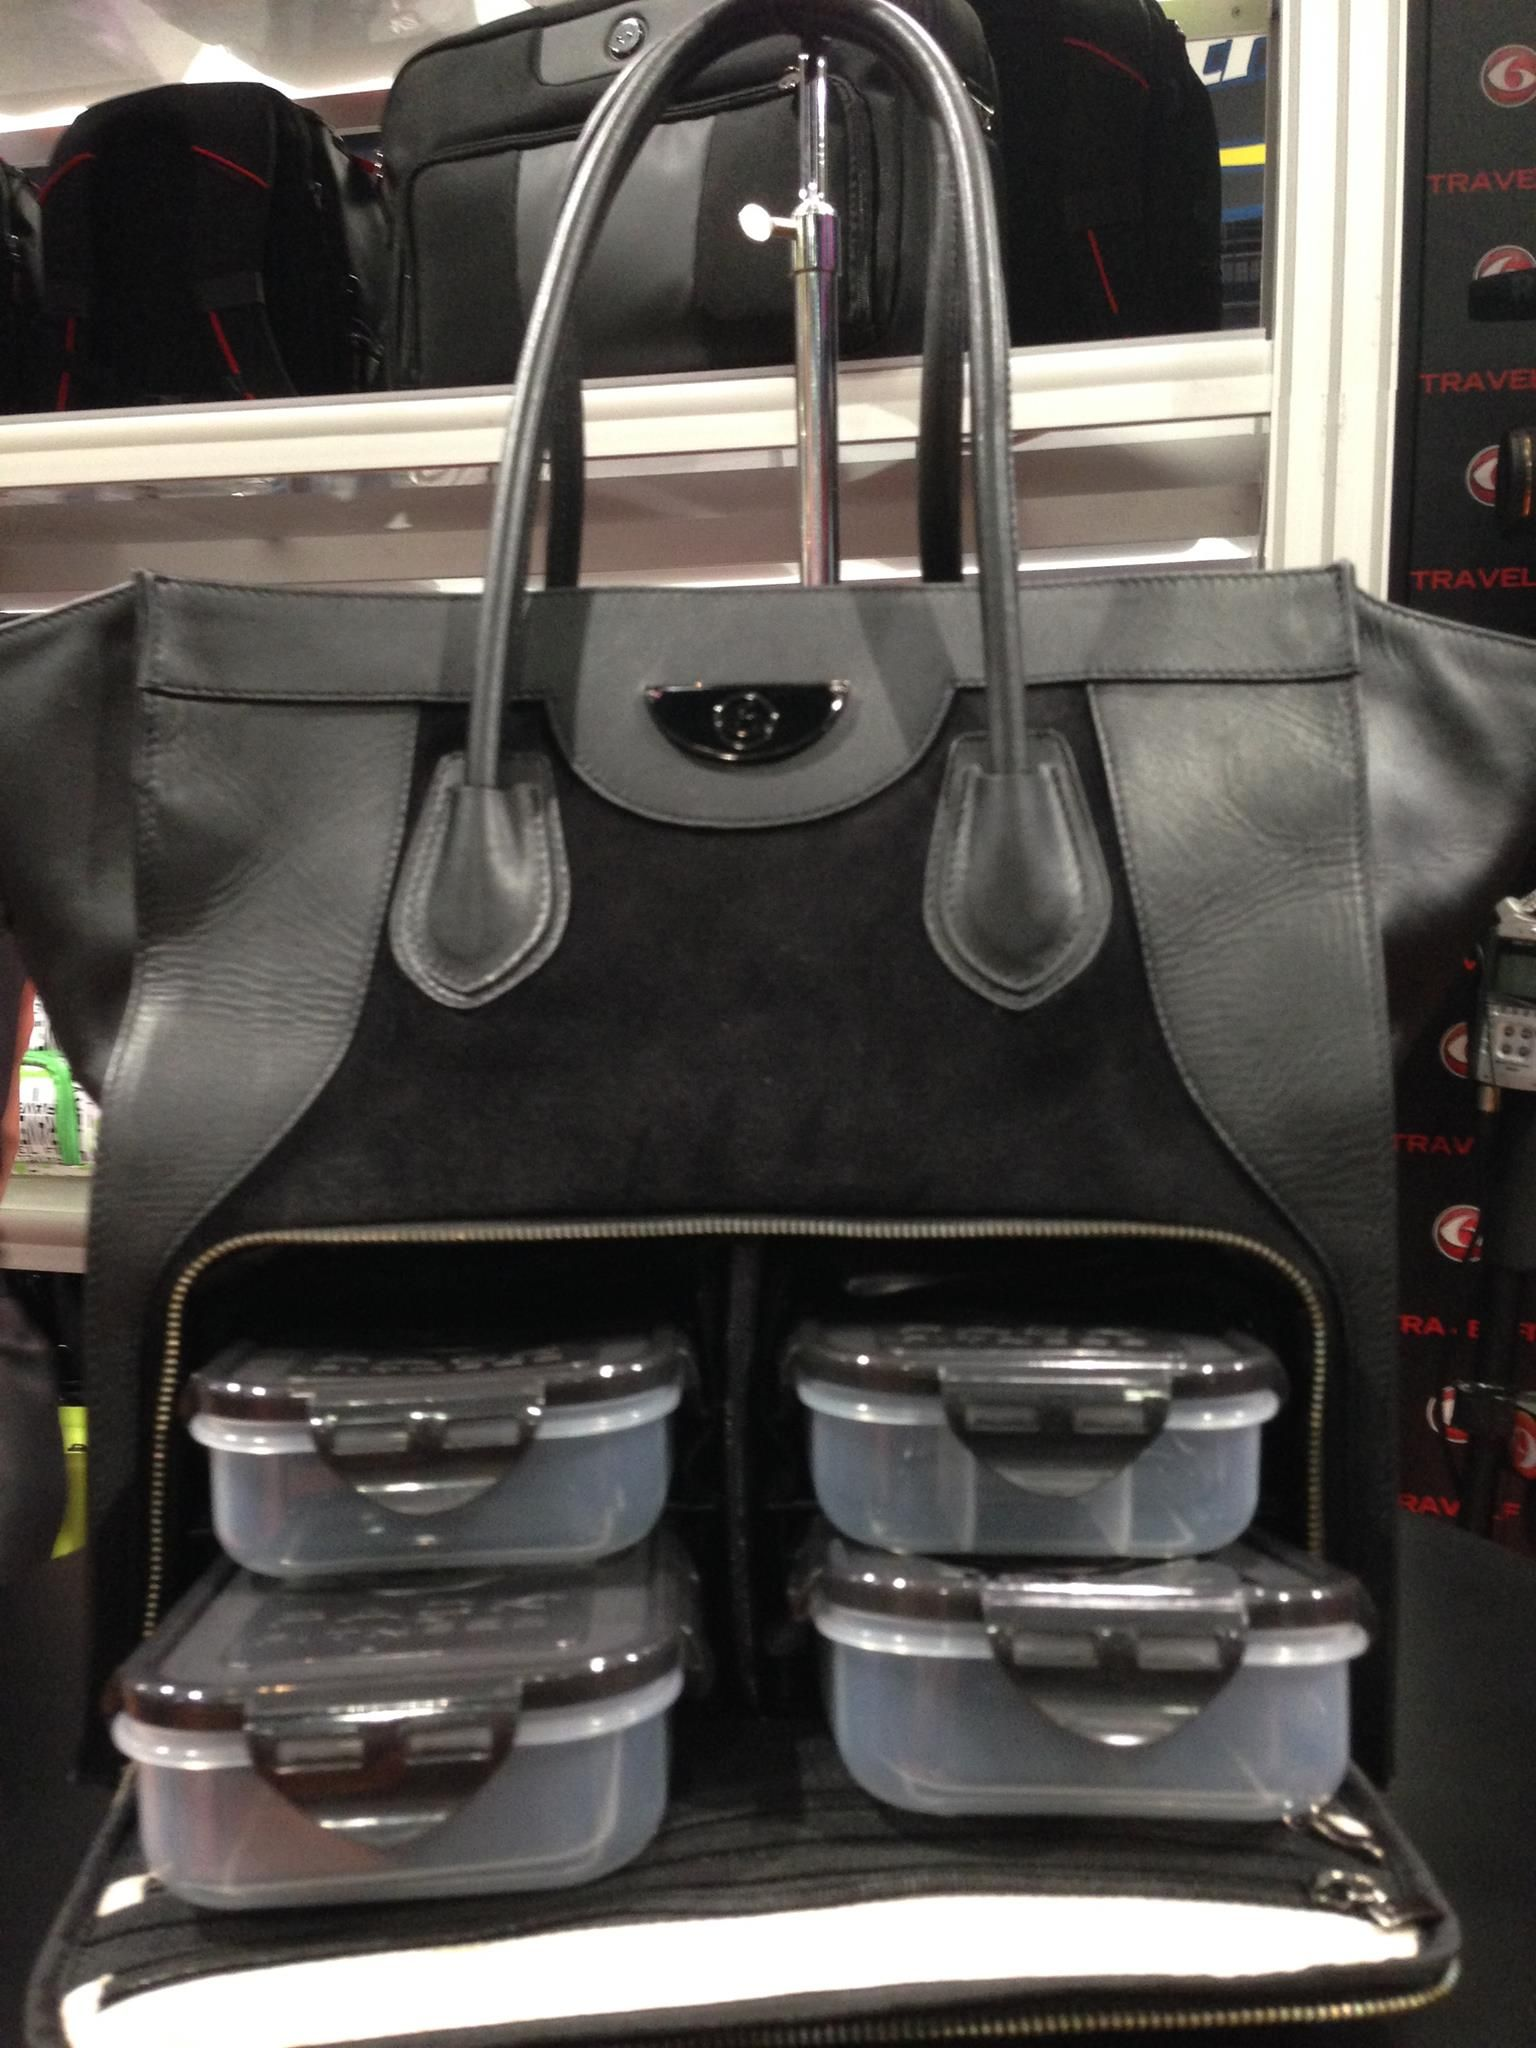 a04de560f5 Preview from the  Olympia Floor  The Women s 2014 Elite Collection Tote  6PACK BAGS!!! Ladies